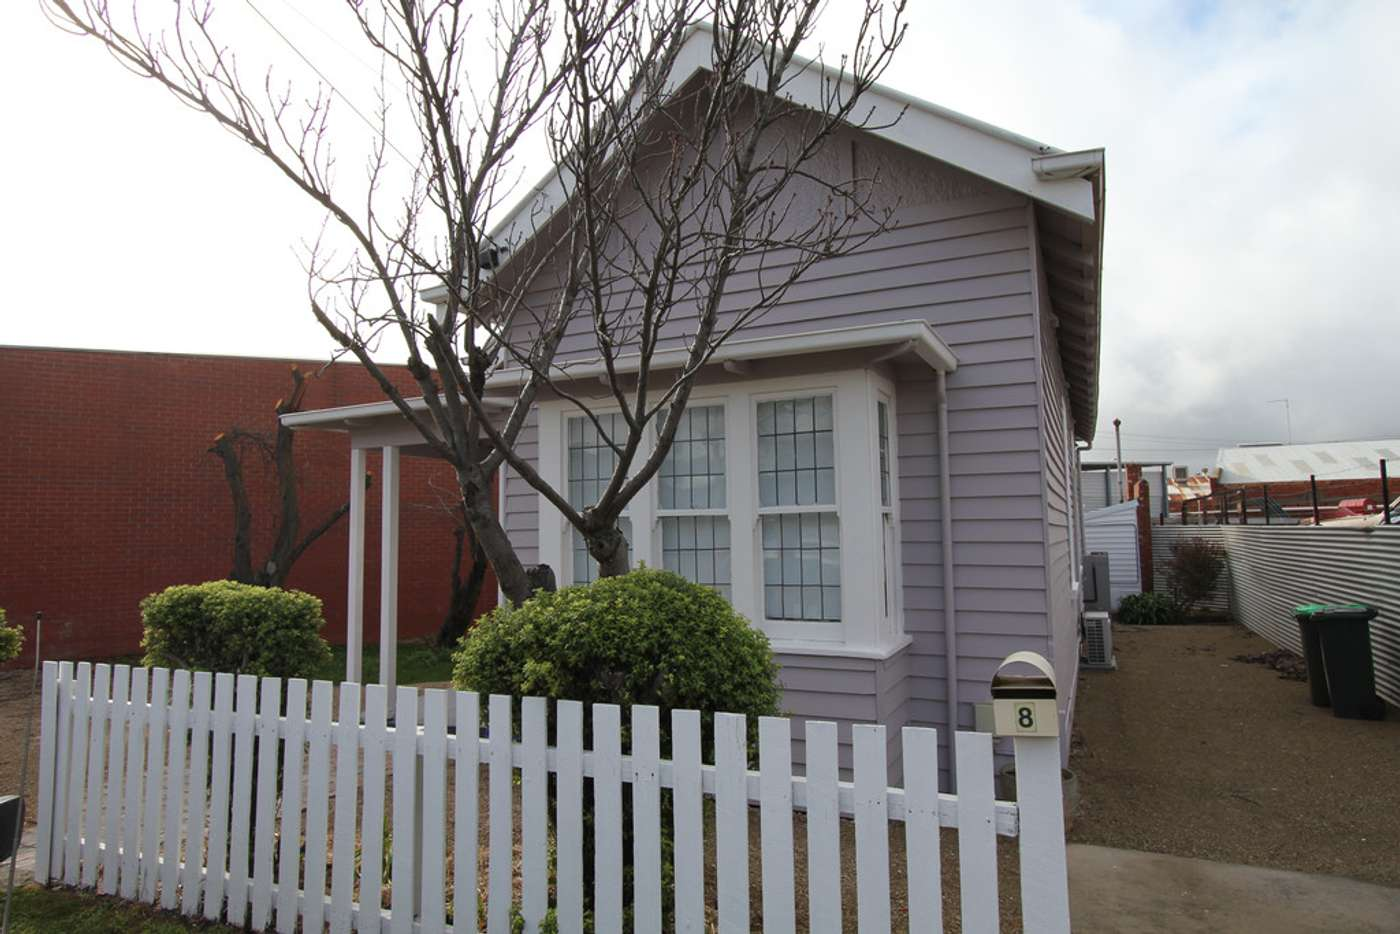 Main view of Homely house listing, 8 Claxton Street, Ballarat Central VIC 3350